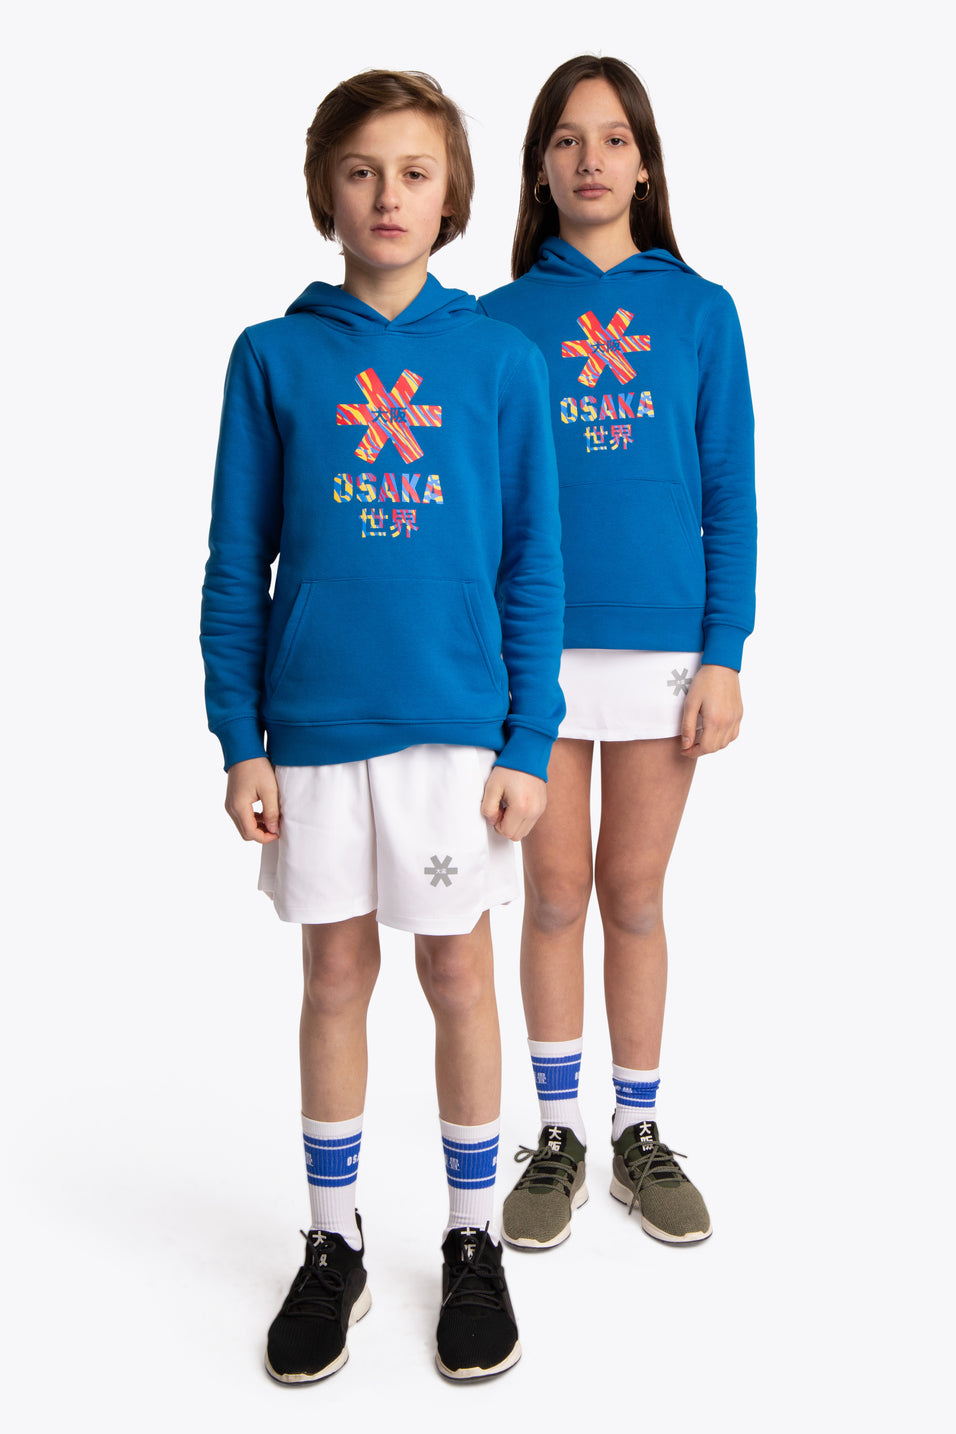 osakaworld kids hoodies